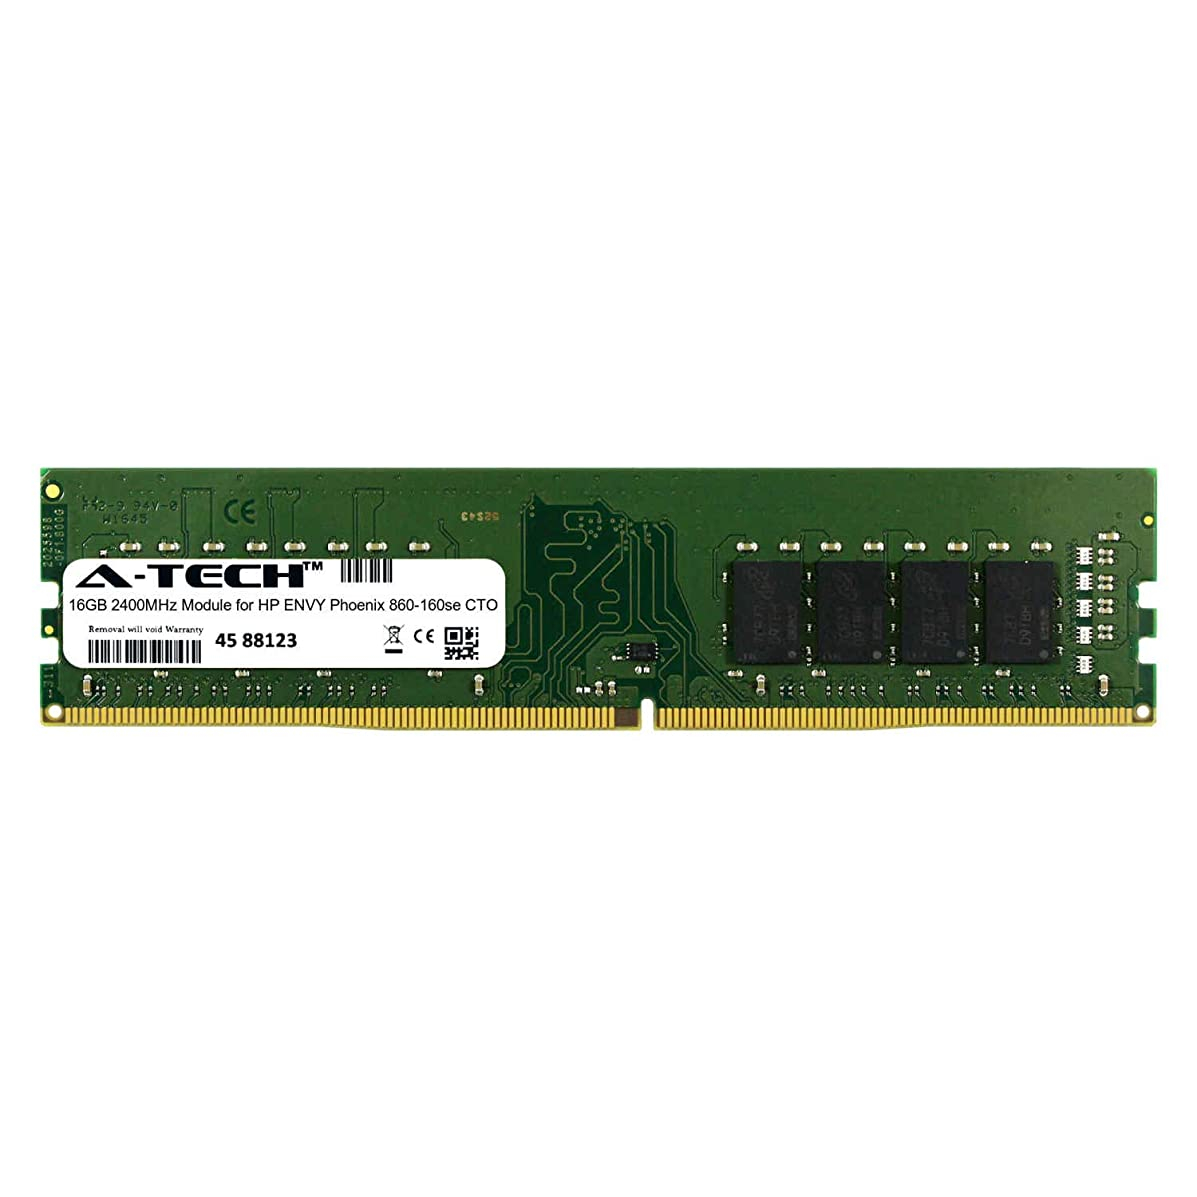 A-Tech 16GB Module for HP Envy Phoenix 860-160se CTO Desktop & Workstation Motherboard Compatible DDR4 2400Mhz Memory Ram (ATMS274300A25822X1)